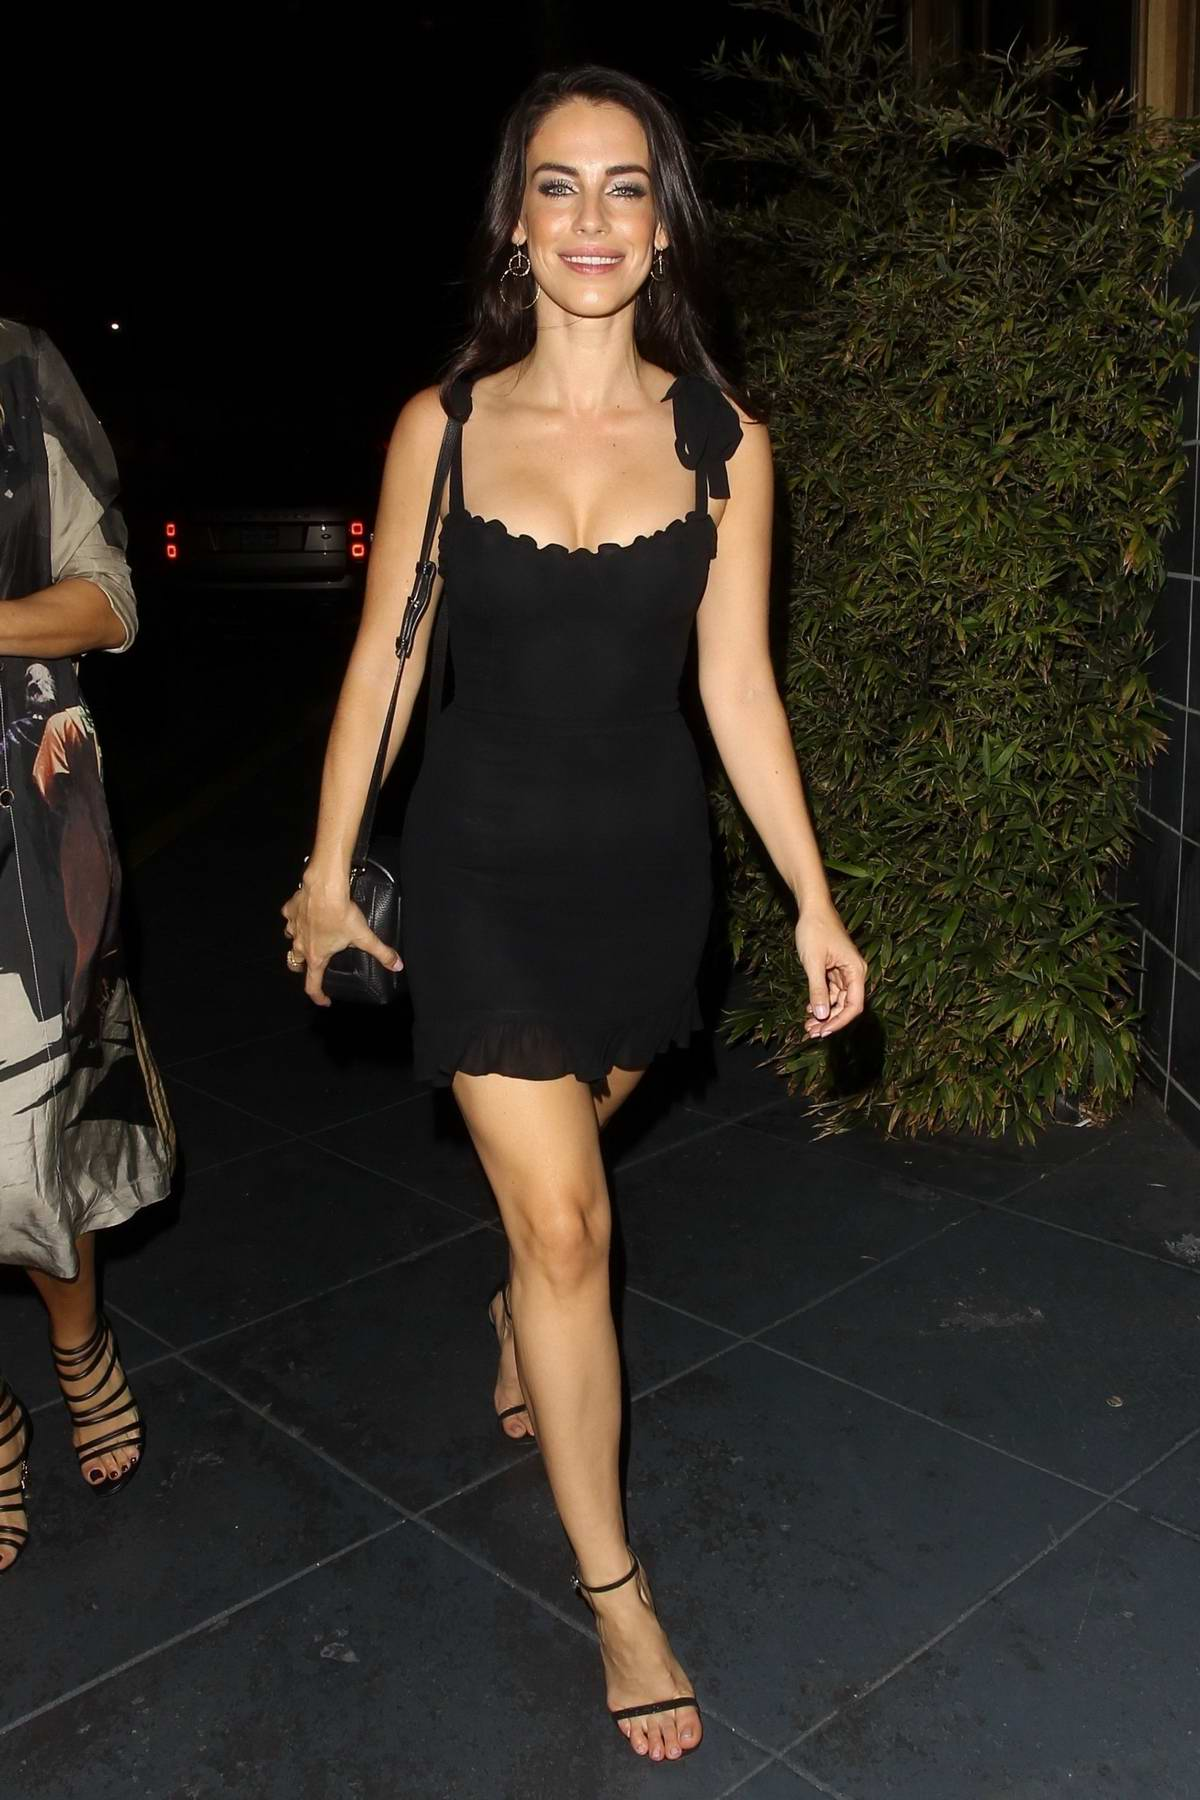 Jessica Lowndes celebrates her 30th birthday with dinner at Roku in West Hollywood, Los Angeles